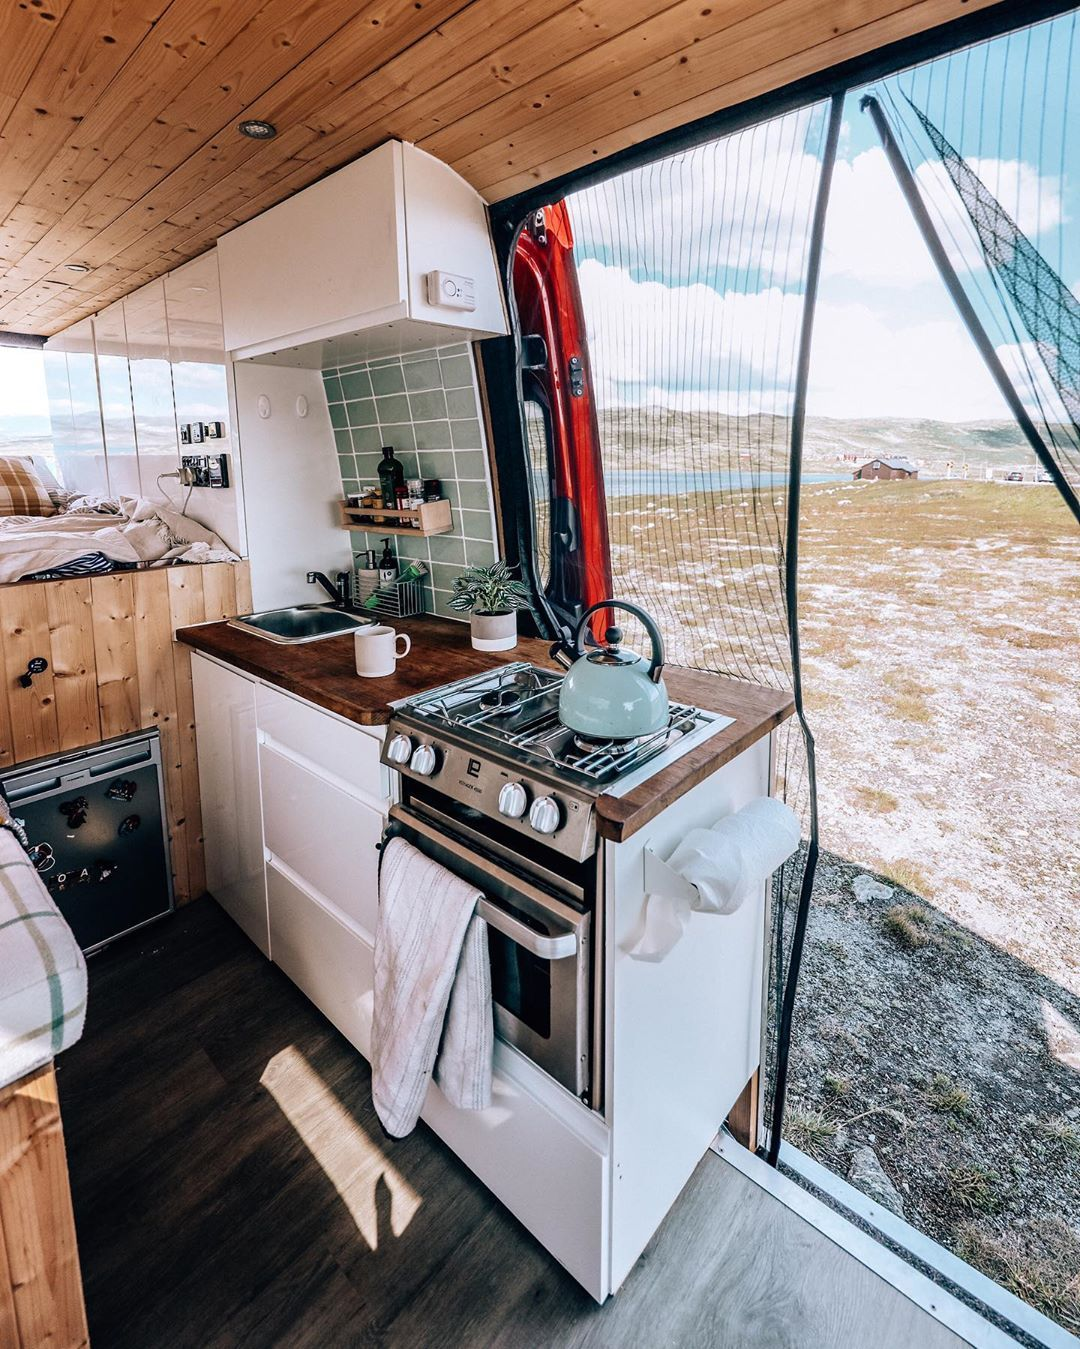 Pat The Van On Instagram Details For Our Kitchen We Used A Standard Household Unit Which Was Modified To Fit We Made In 2020 Van Life Diy Van Home Van Life